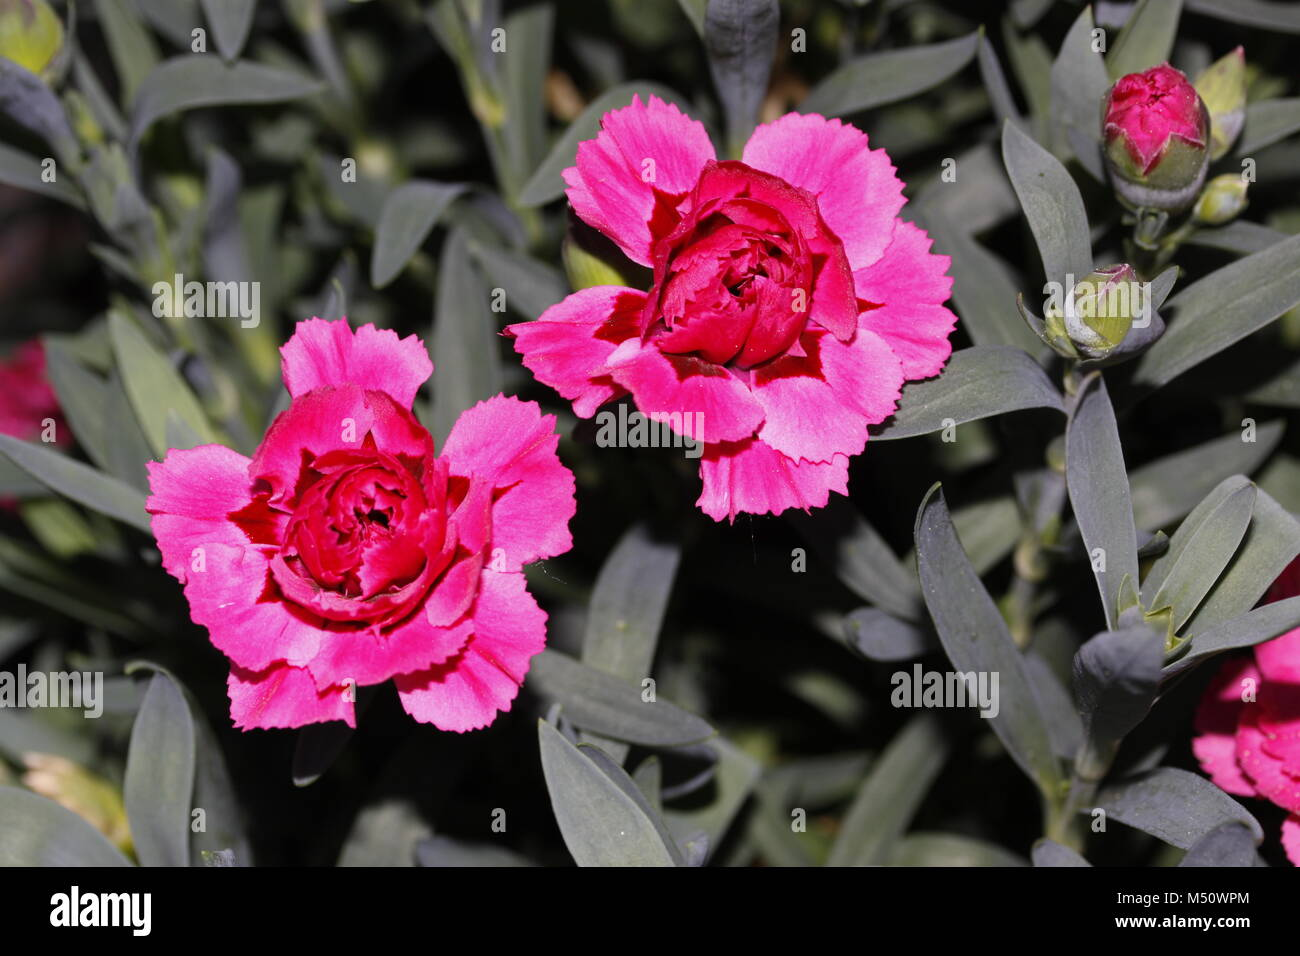 Carnations dianthus - Stock Image